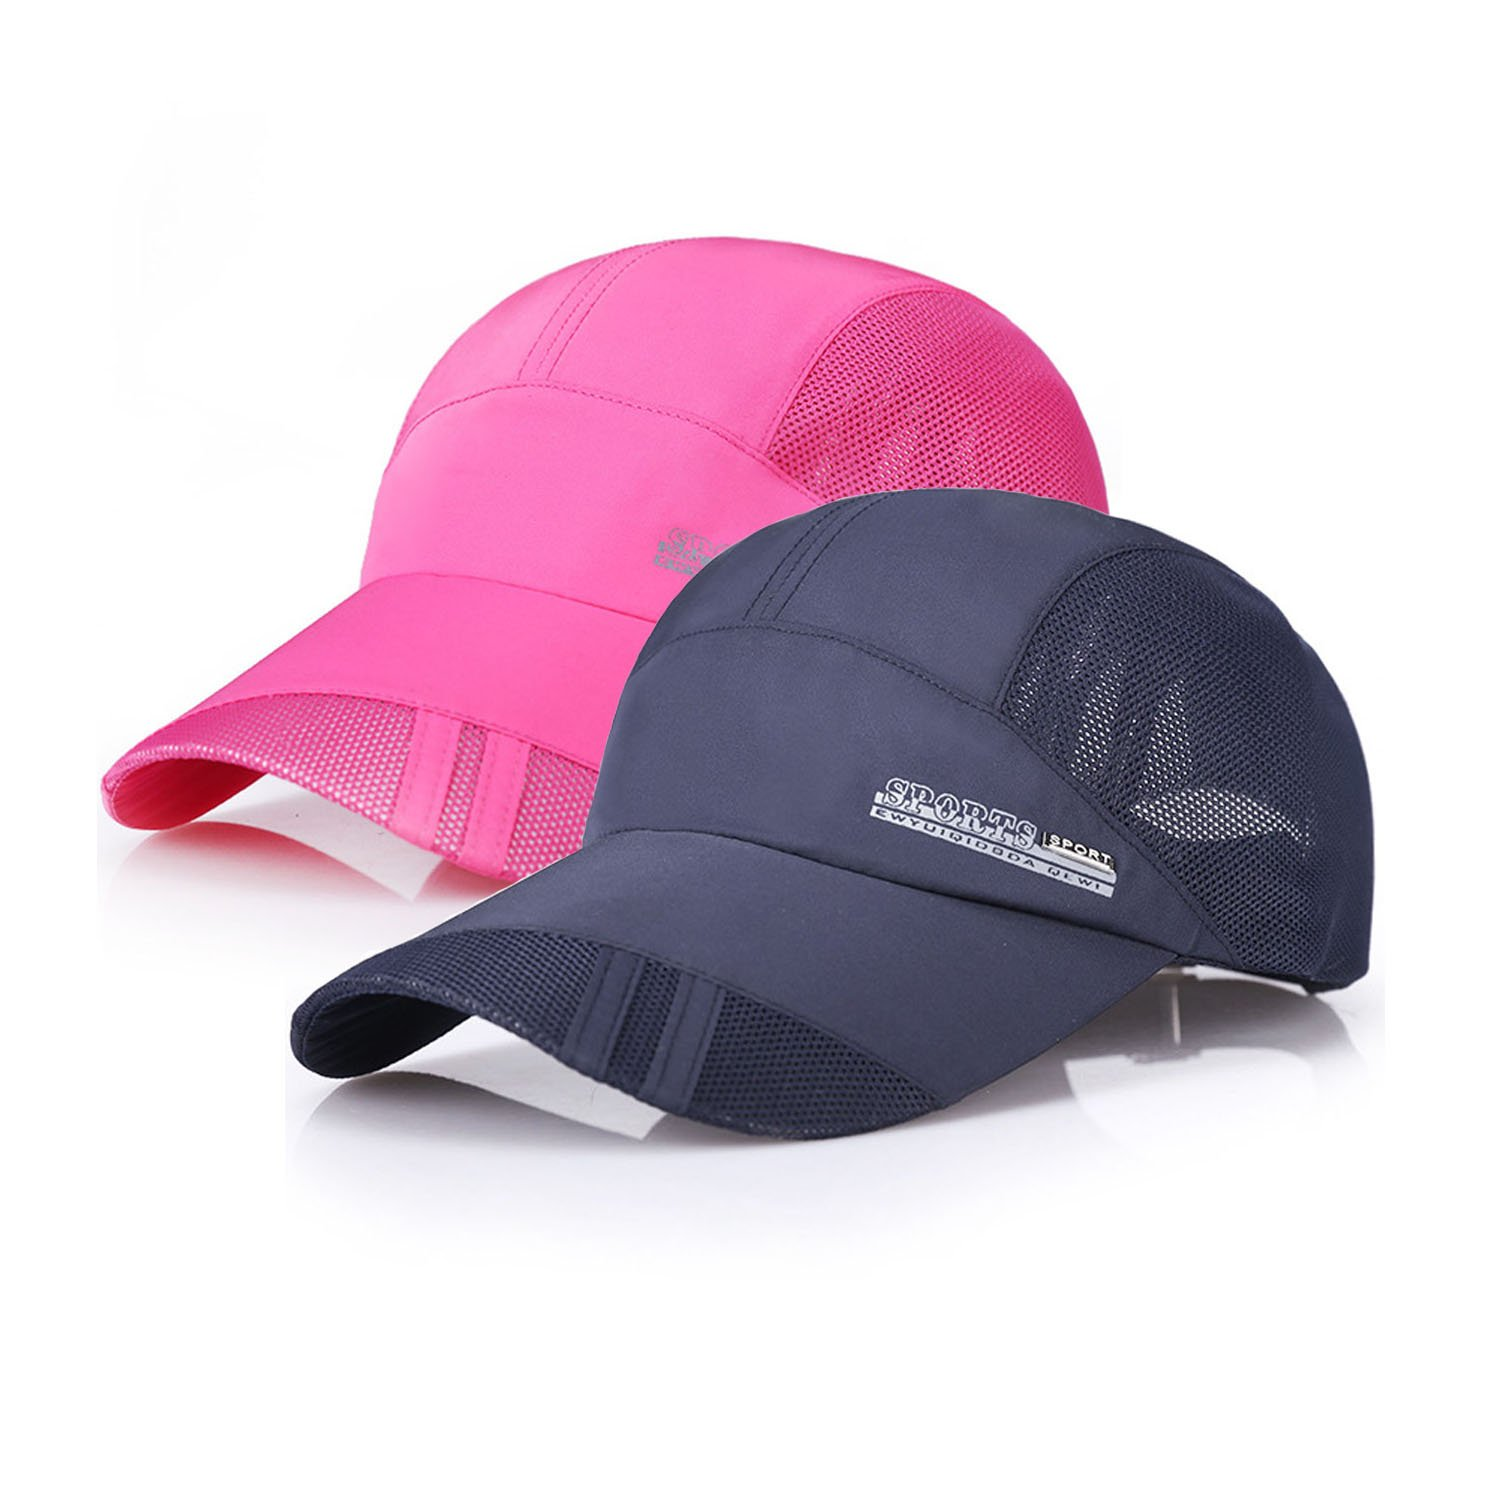 sdsruioo New UV Quick-Drying Waterproof Baseball Cap Outdoor Lightweight UV Protection Hats (Rose red+Navy)